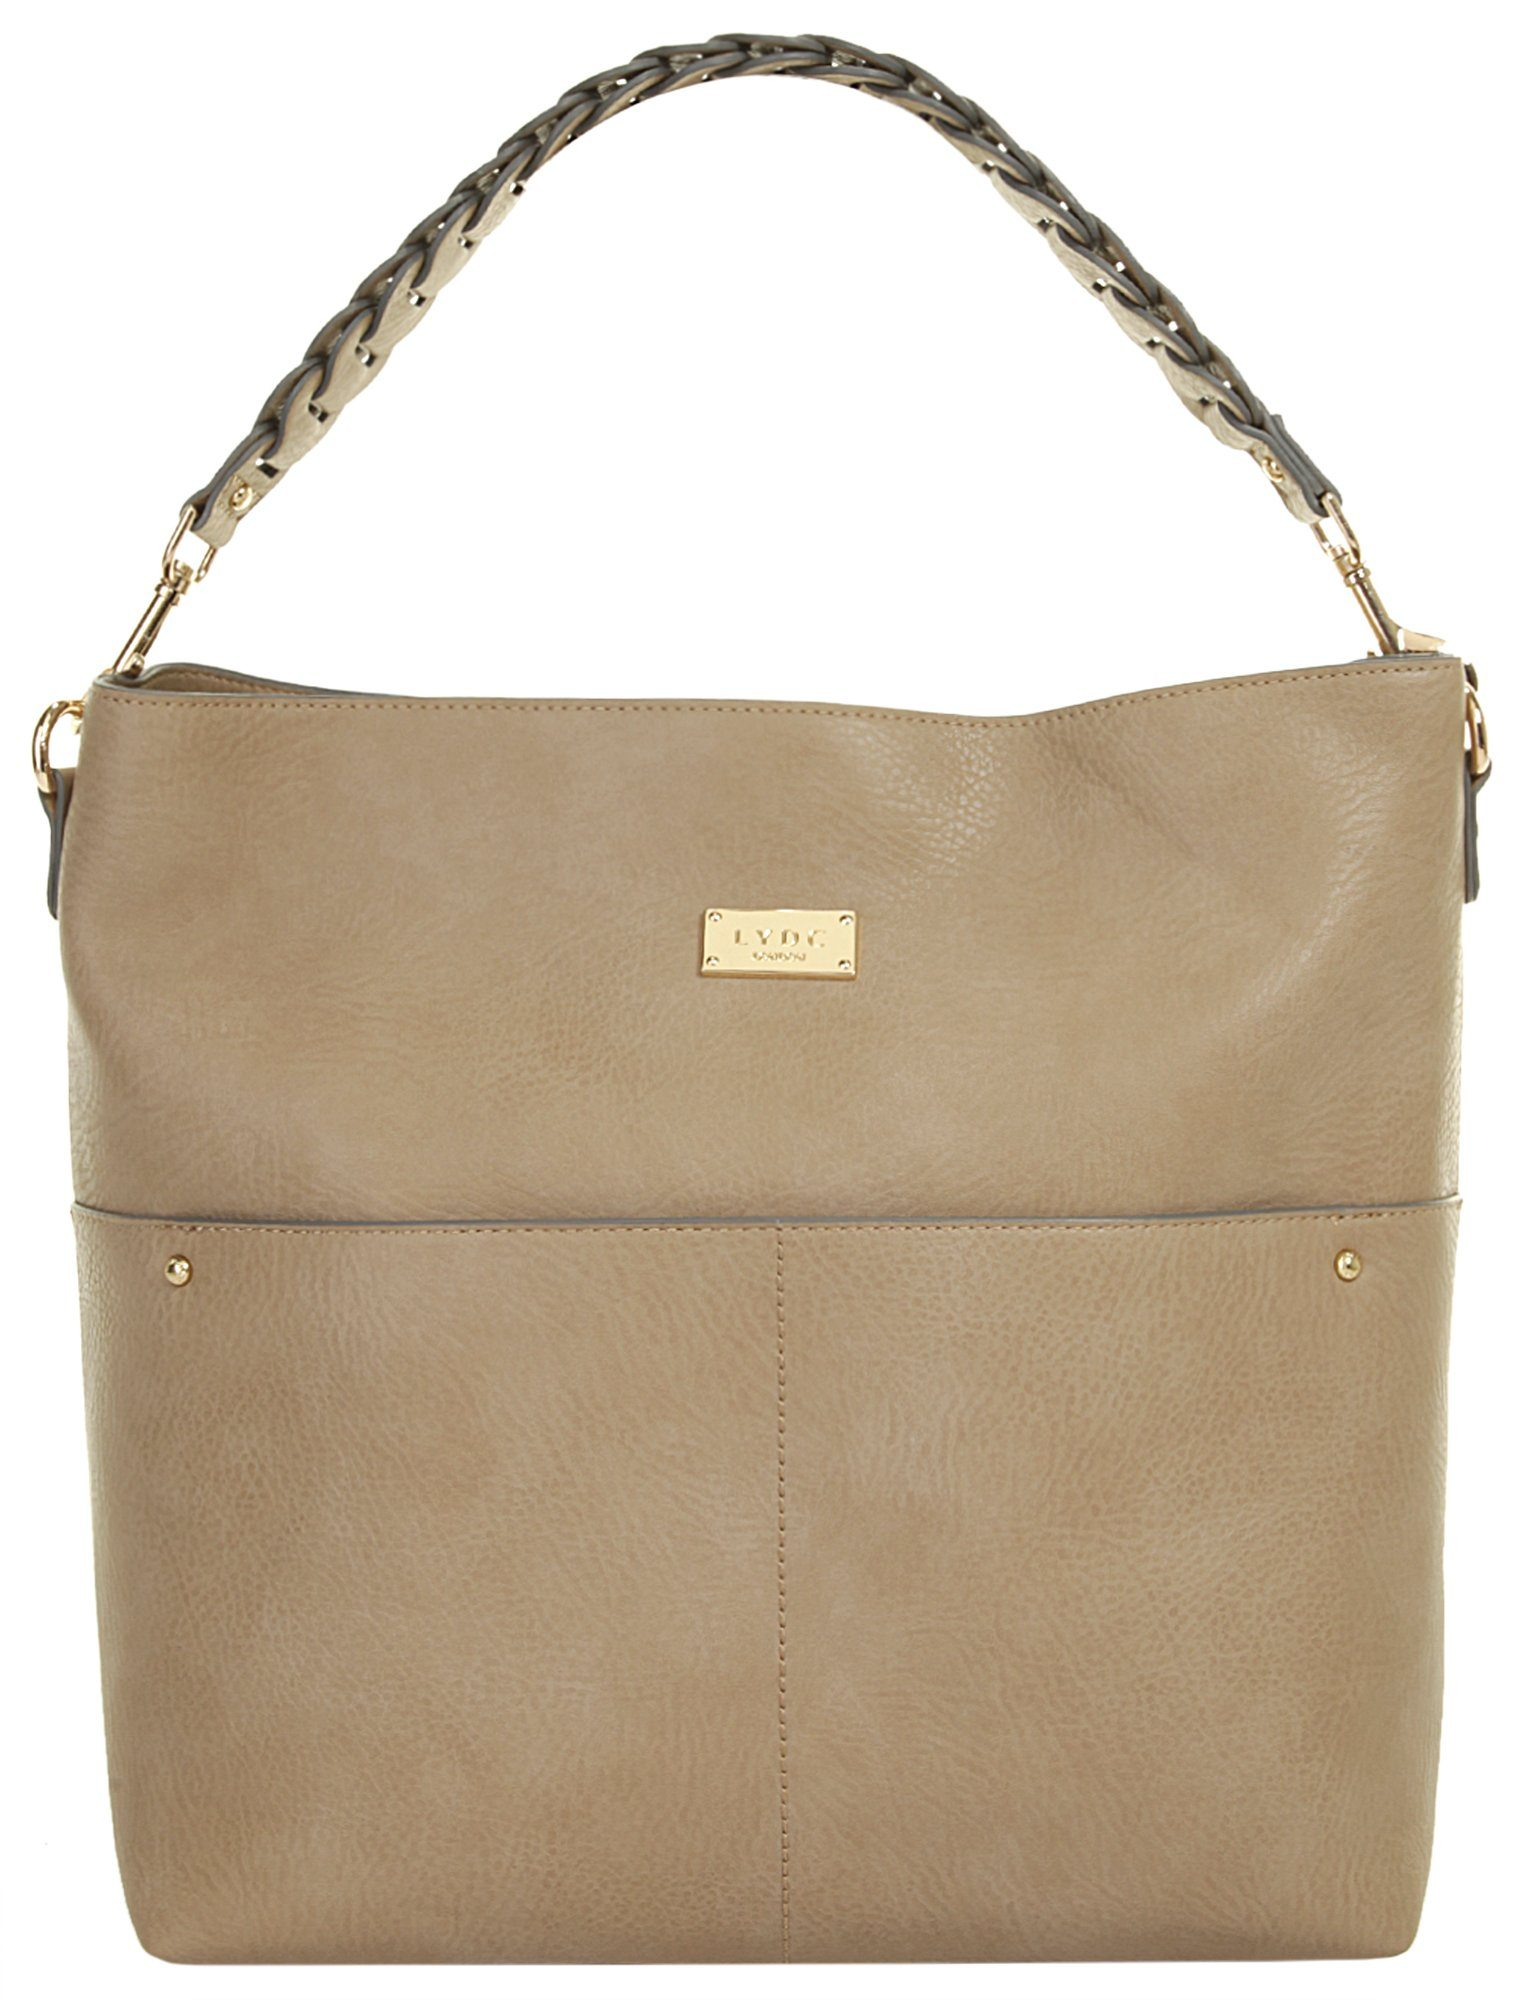 LYDC Damen Shopper